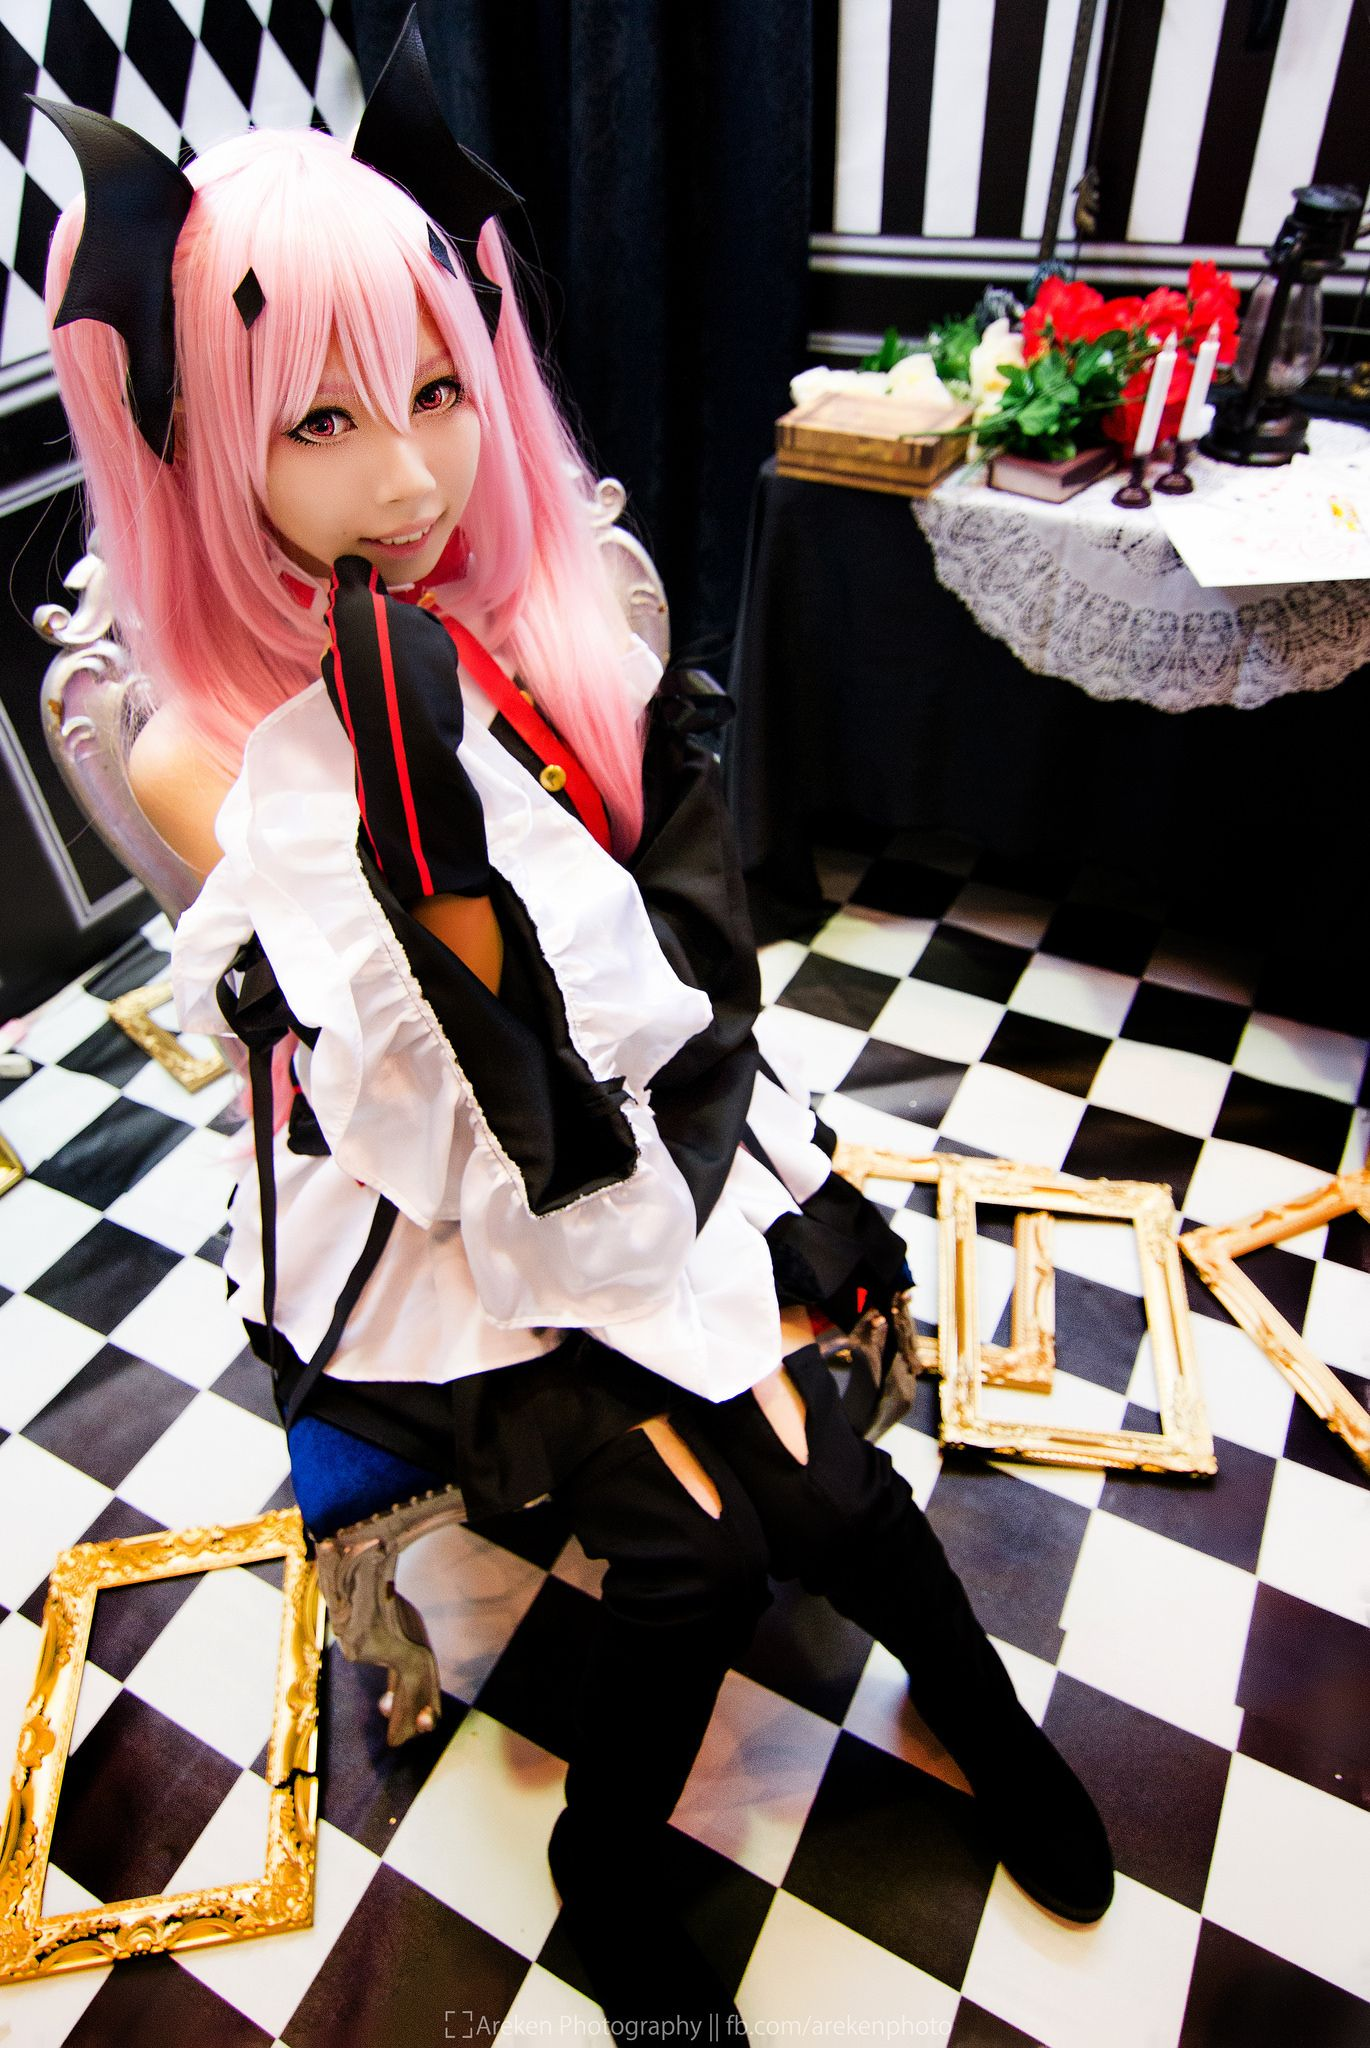 Krul tepes rice usagi krul tepes cosplay photo free website for submitting cosplay photos and is used by cosplayers in countries all around the world even if youre not a cosplayer yourself you can solutioingenieria Gallery